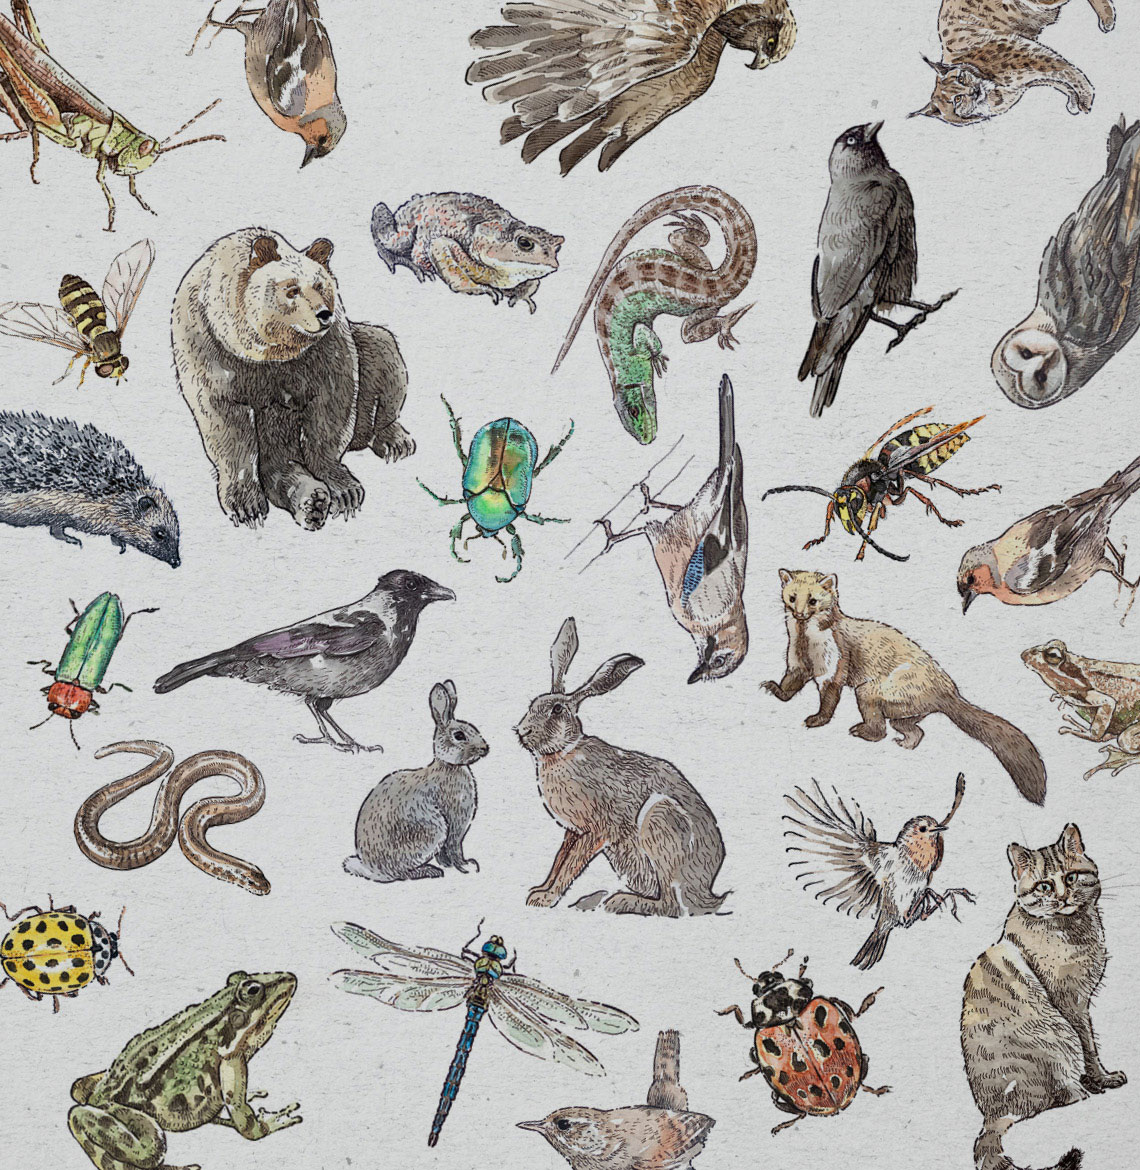 watercolor illustration of animals and nature